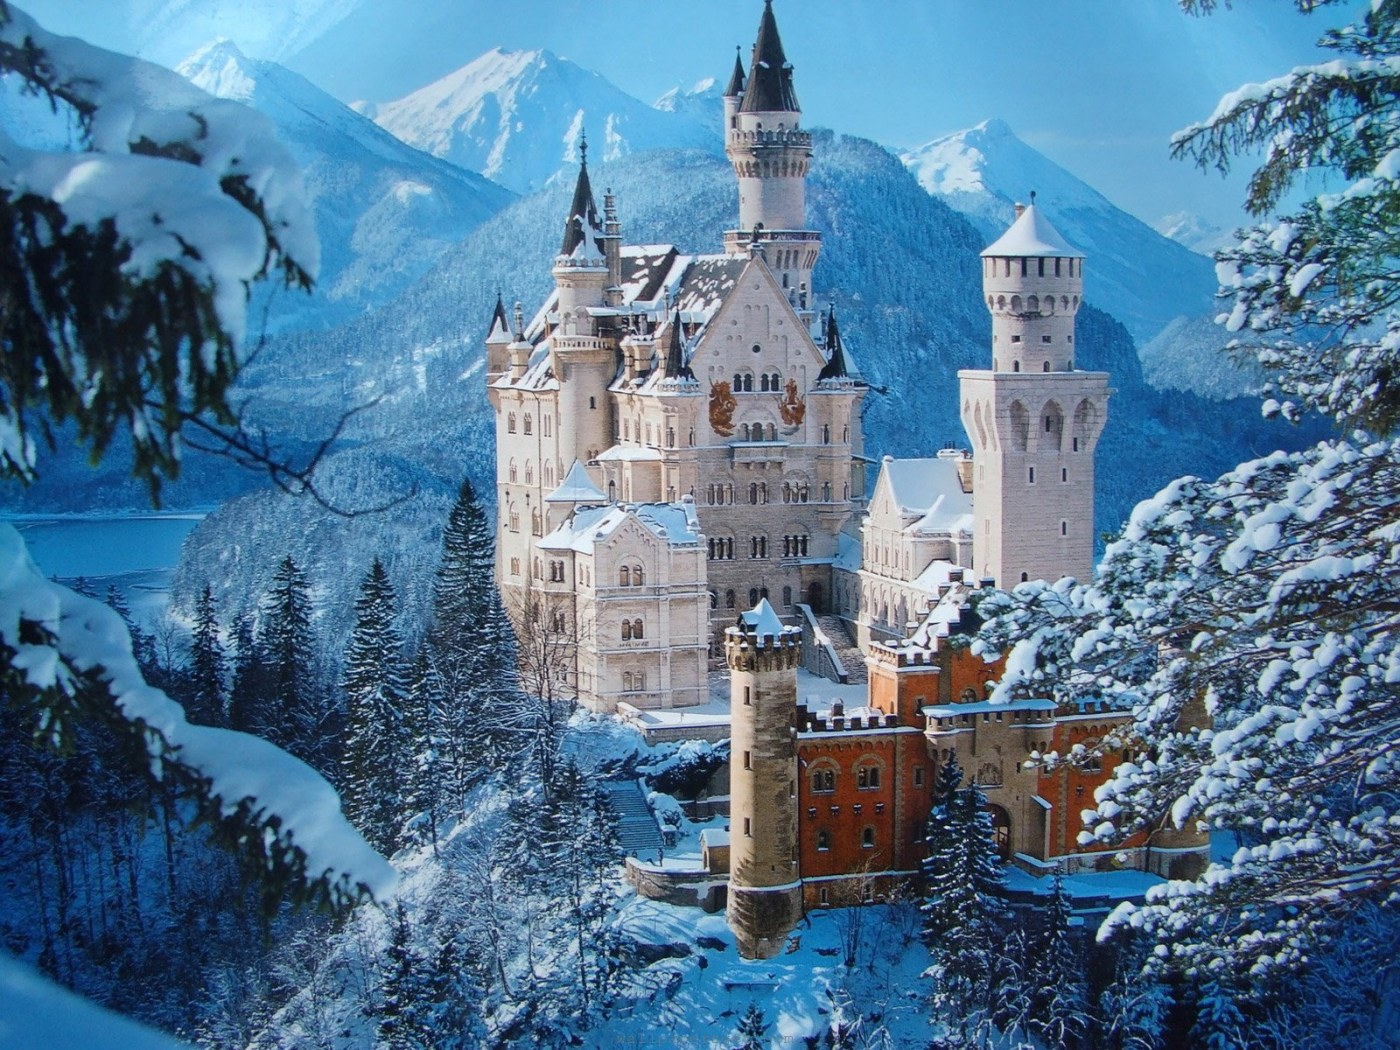 Schloss-Neuschwanstein-gemeni-winter-azbooking